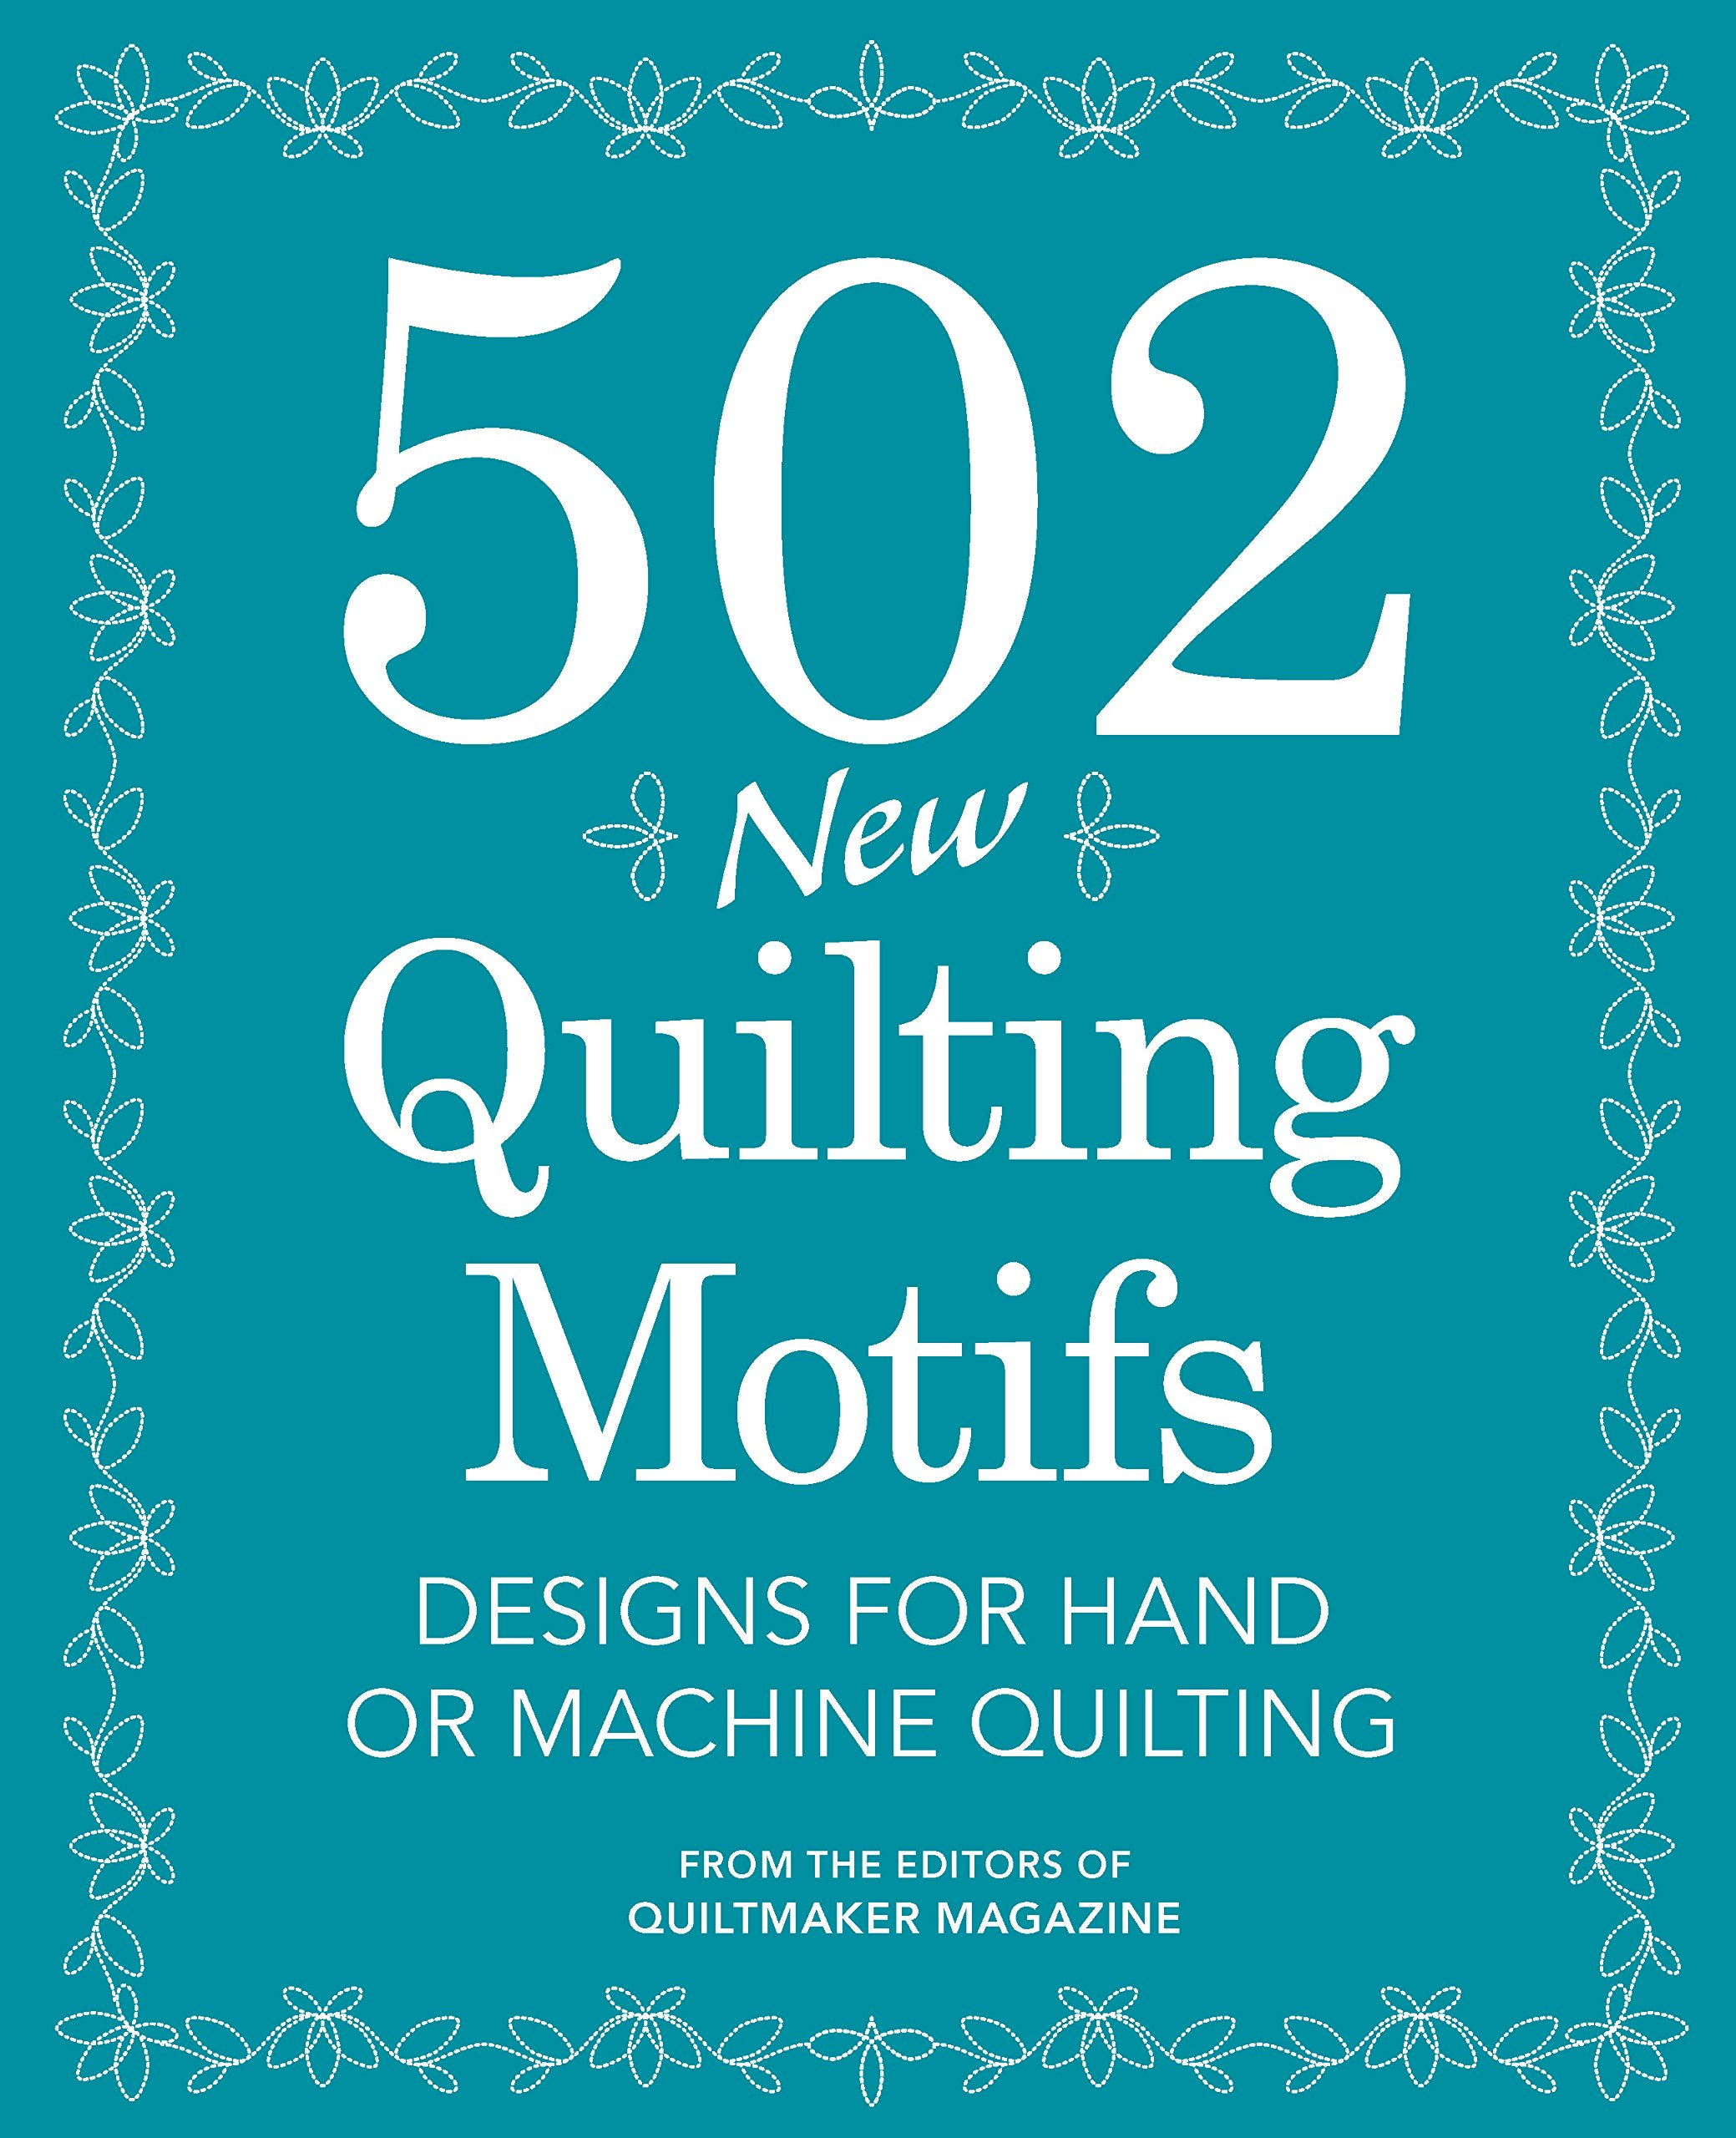 502 New Quilting Motifs Designs product image